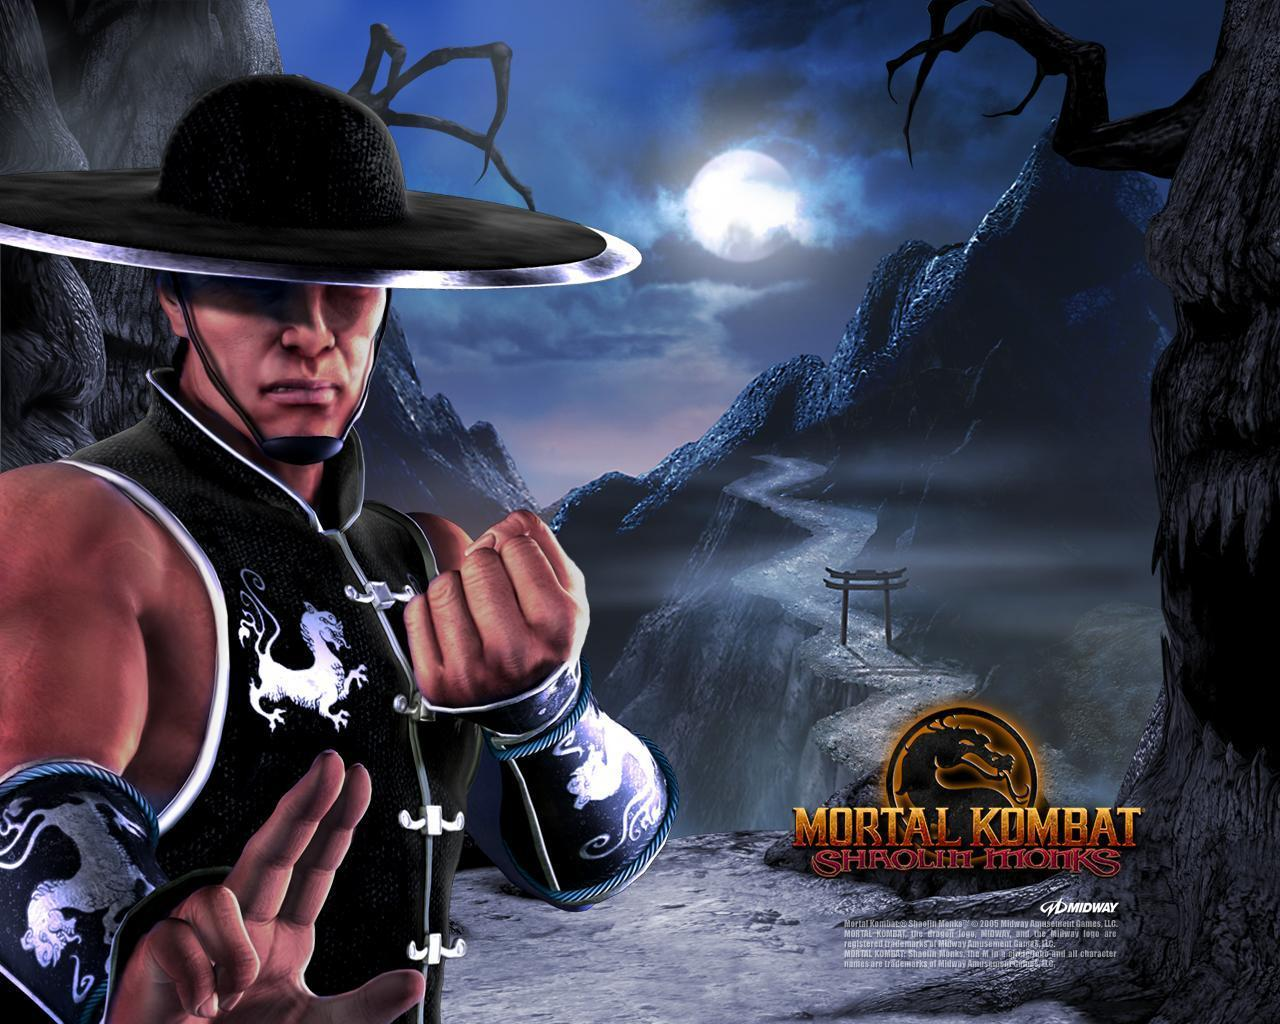 Mortal Kombat Mileena HD desktop wallpaper High  - mileena in mortal kombat game wallpapers